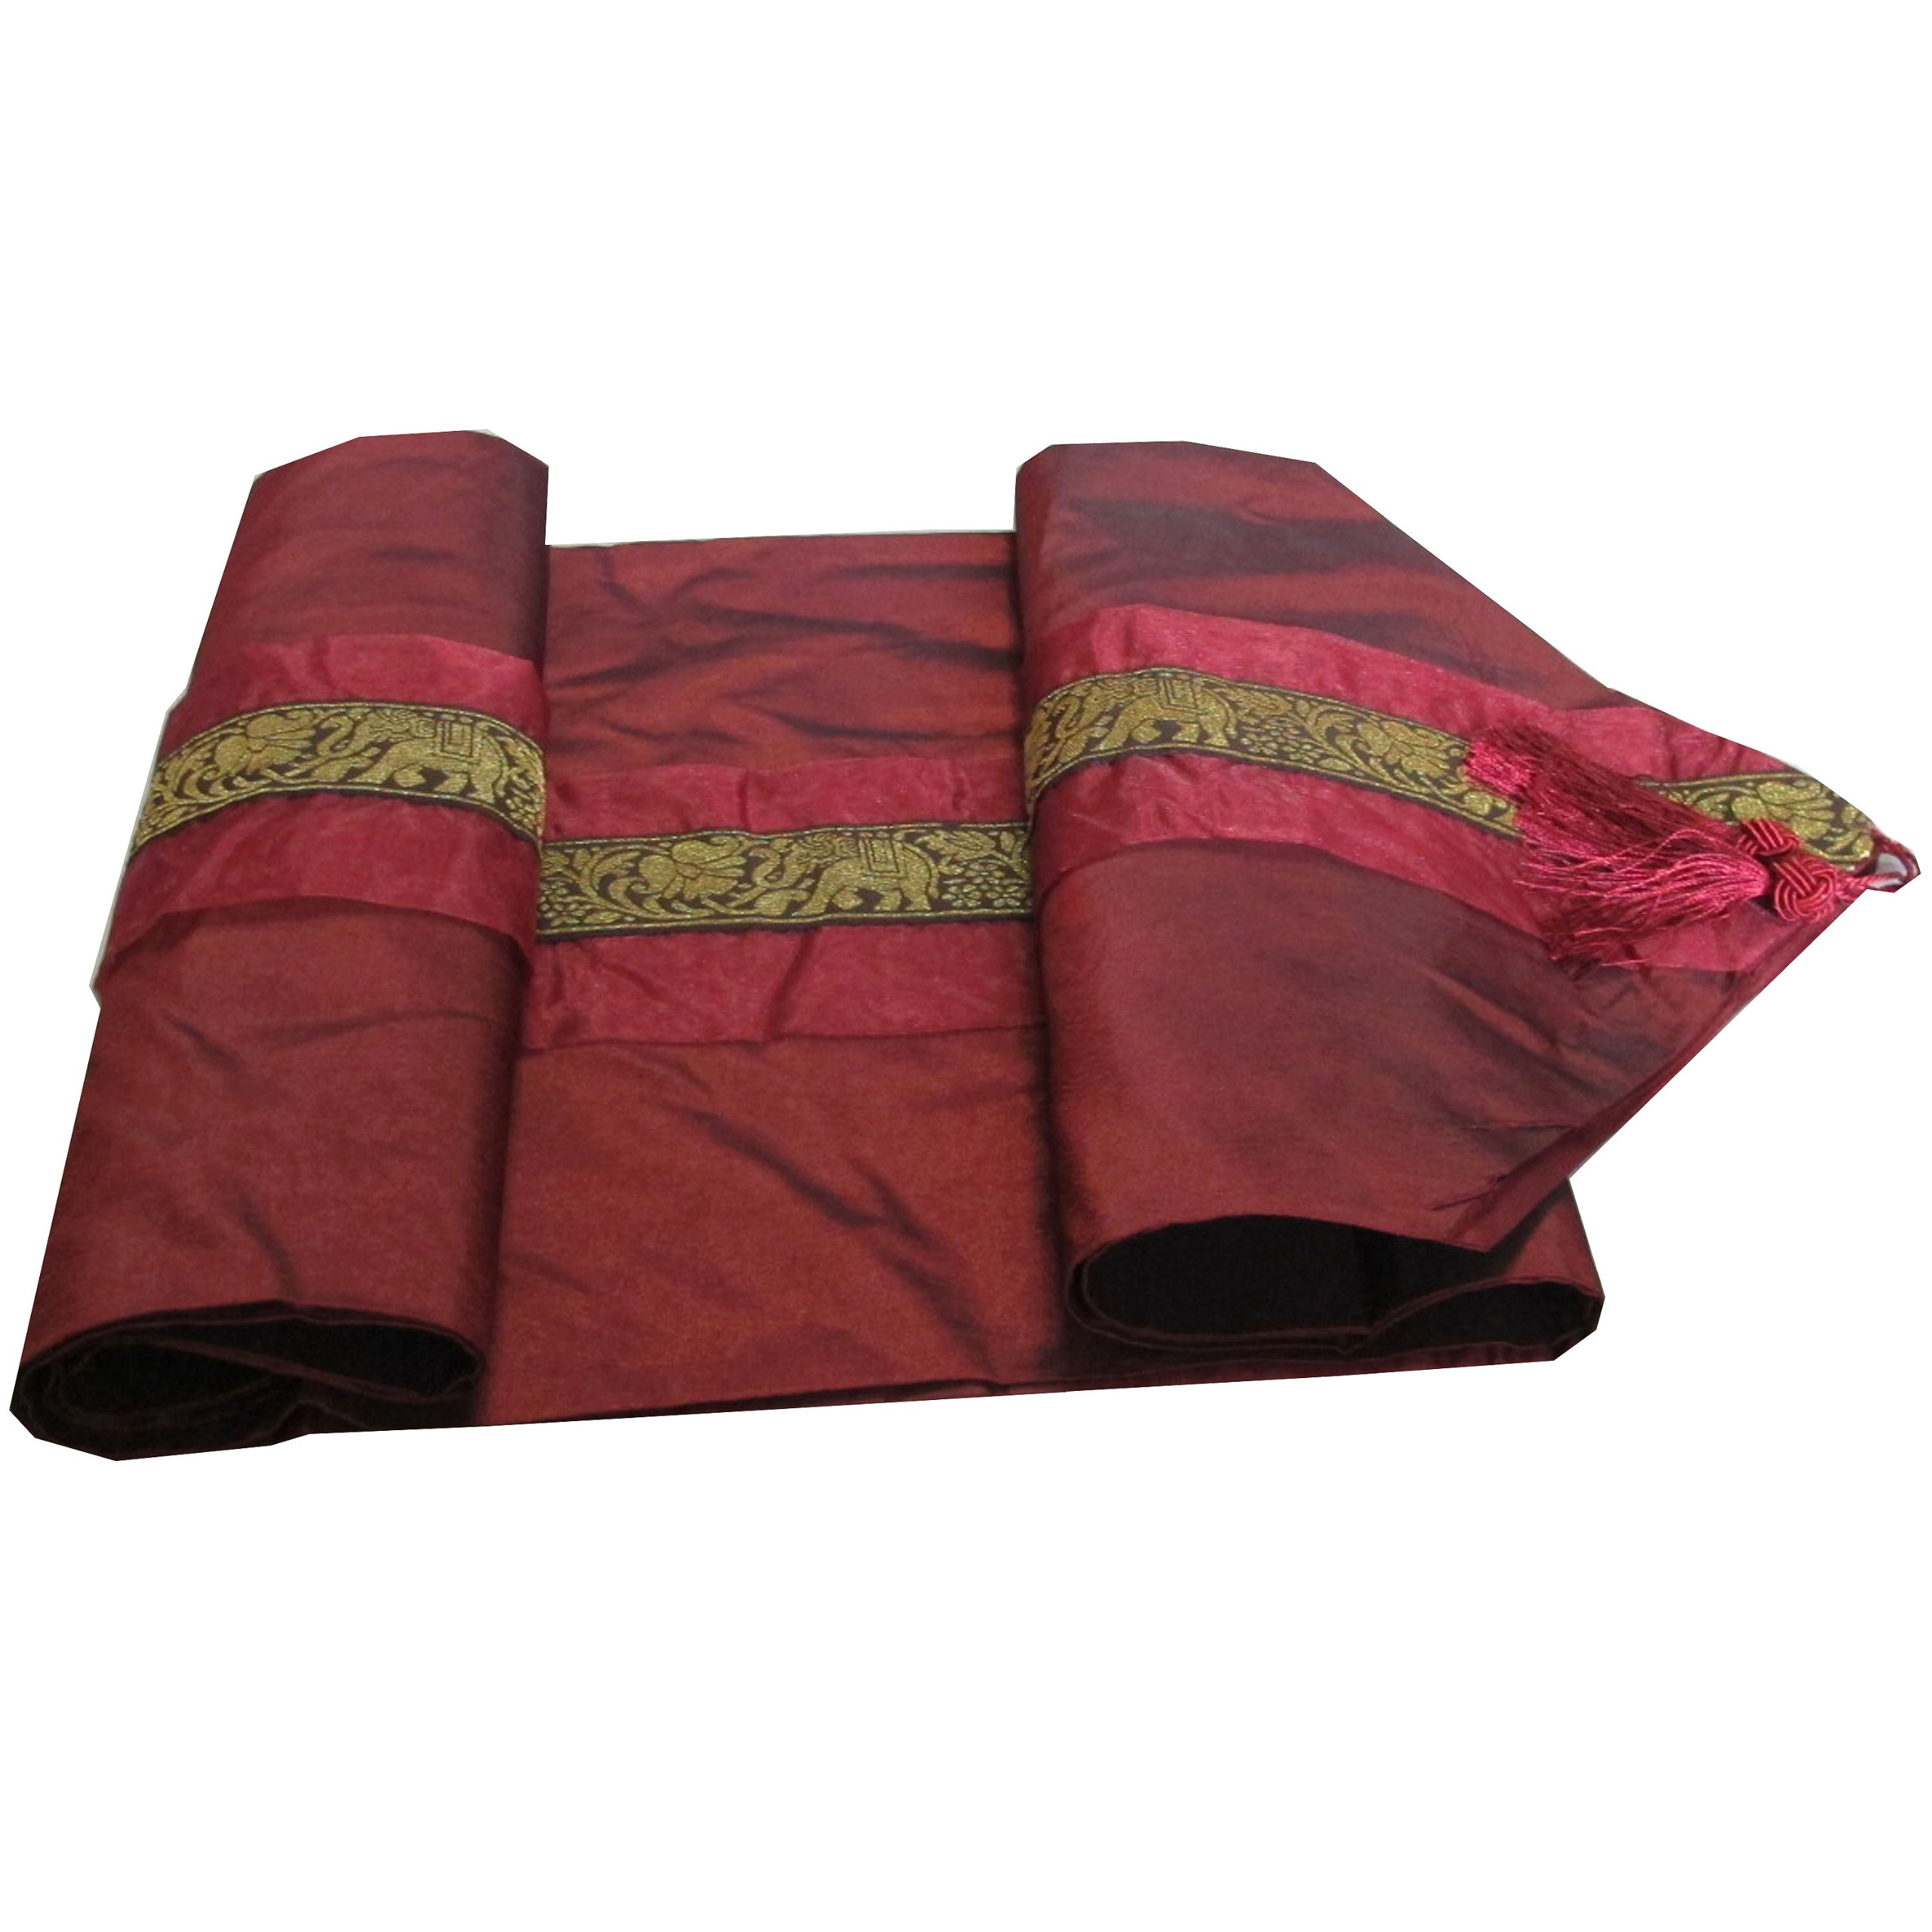 ''HelloJatujak'' BEAUTIFUL & COOL ELEPHANTS!! (TABLE / BED RUNNER) ELEPHANTS ON YOUR BED SIZE WIDTH 14 INCHES LONG 72 INCHES MADE FROM THAI SILK (ELEPHANT MEAN BIG POWER AS THE KING OF THAILAND HAS MANY ELEPHANT) by HelloJatujak